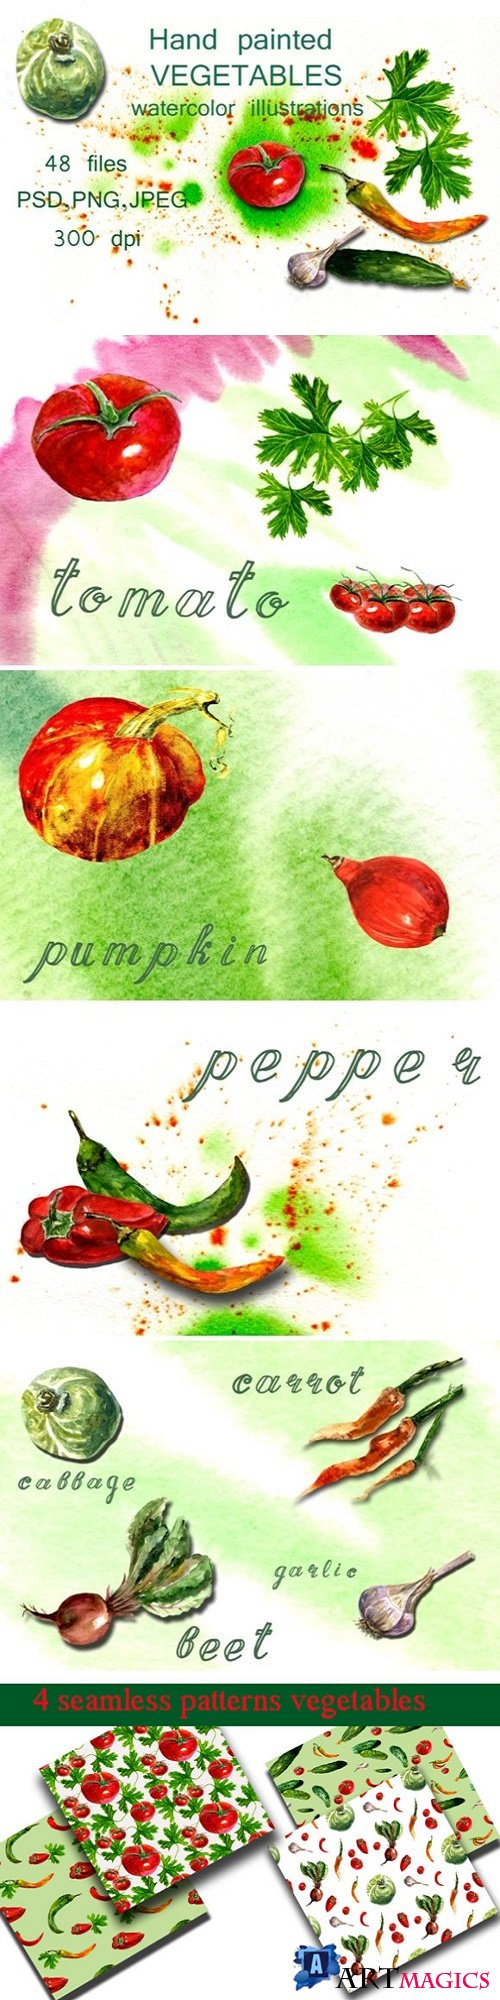 Watercolor Illustrations Vegetables - 1657912